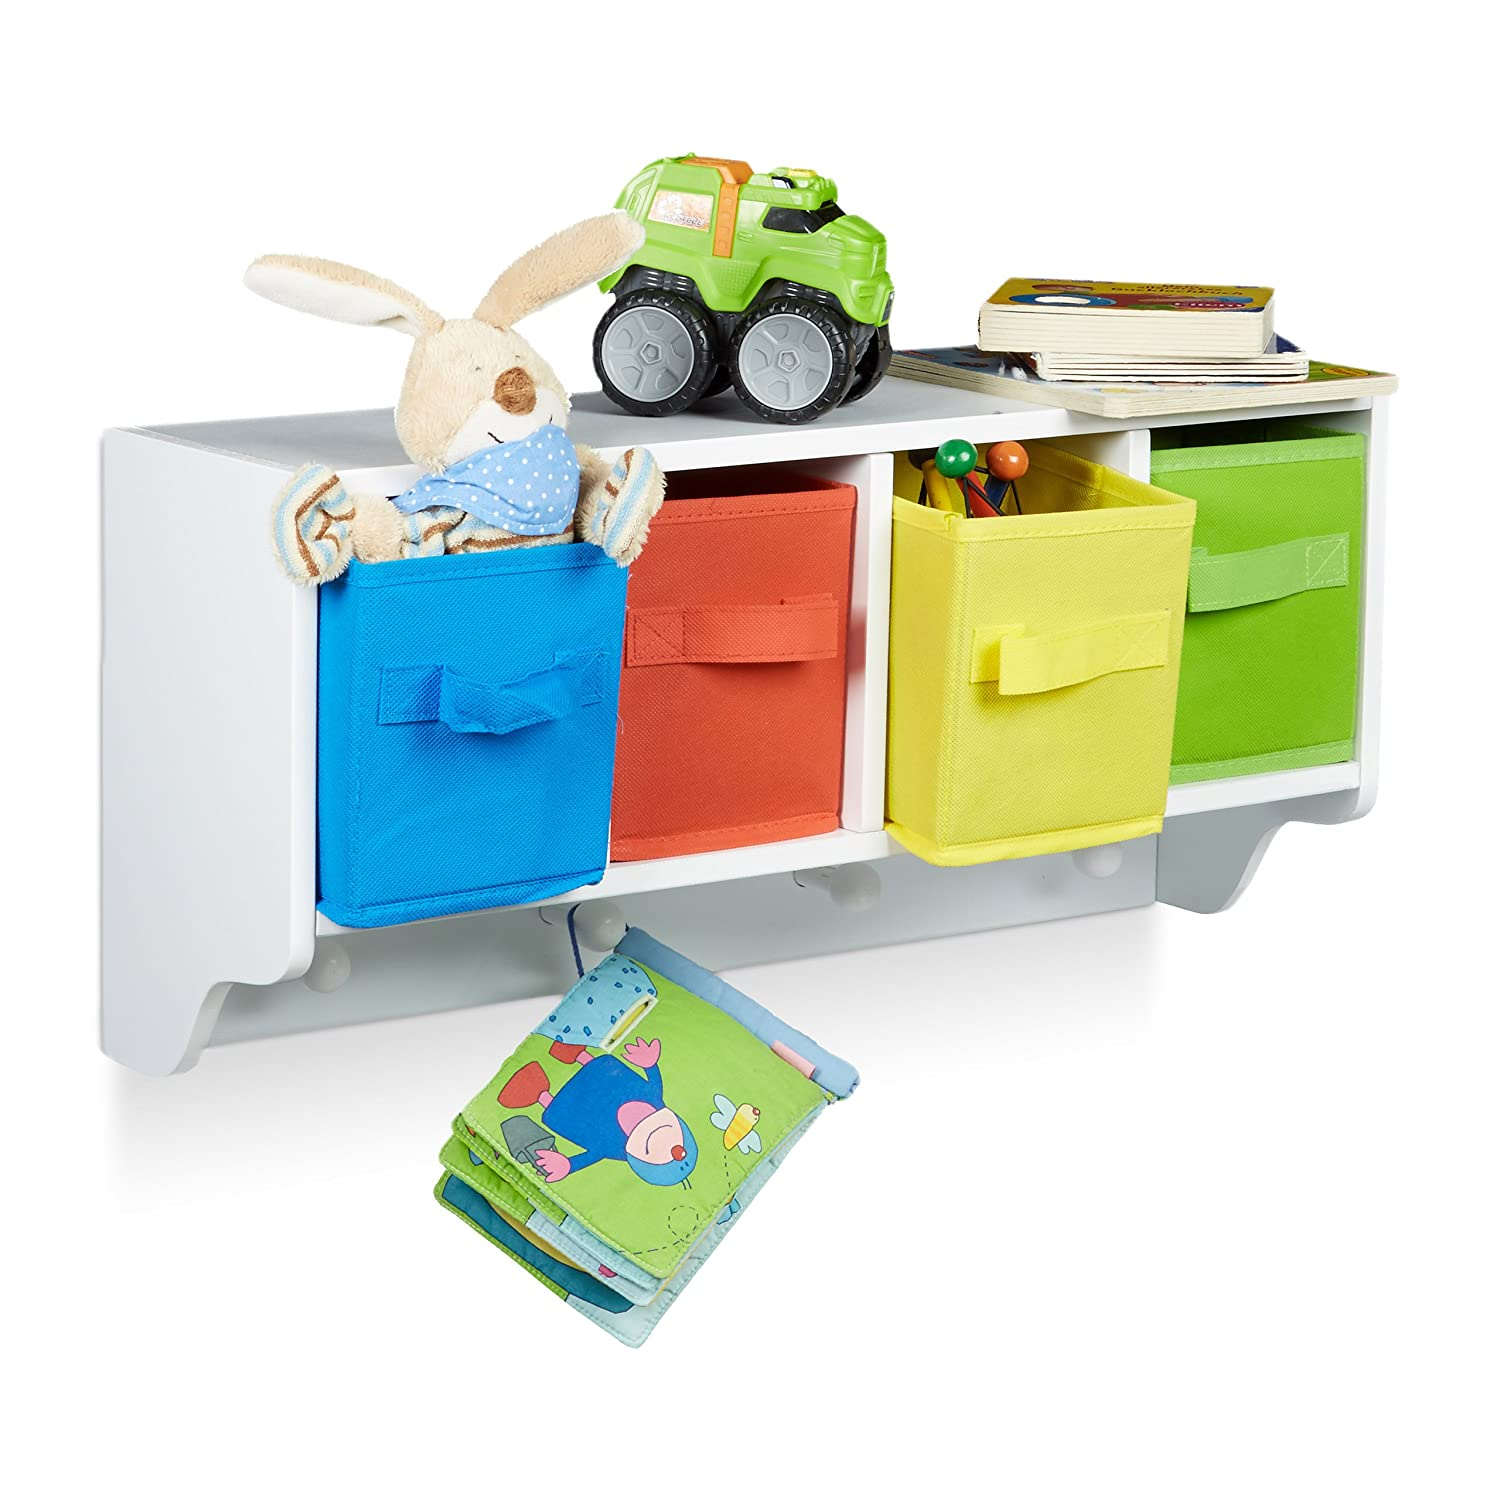 White Shelf with 4 Garment Hooks Childrens Wardrobe with 4 Colorful Folding Boxes Size: ca 28 x 61 x 16 cm Relaxdays Albus Kids Wall Storage Unit